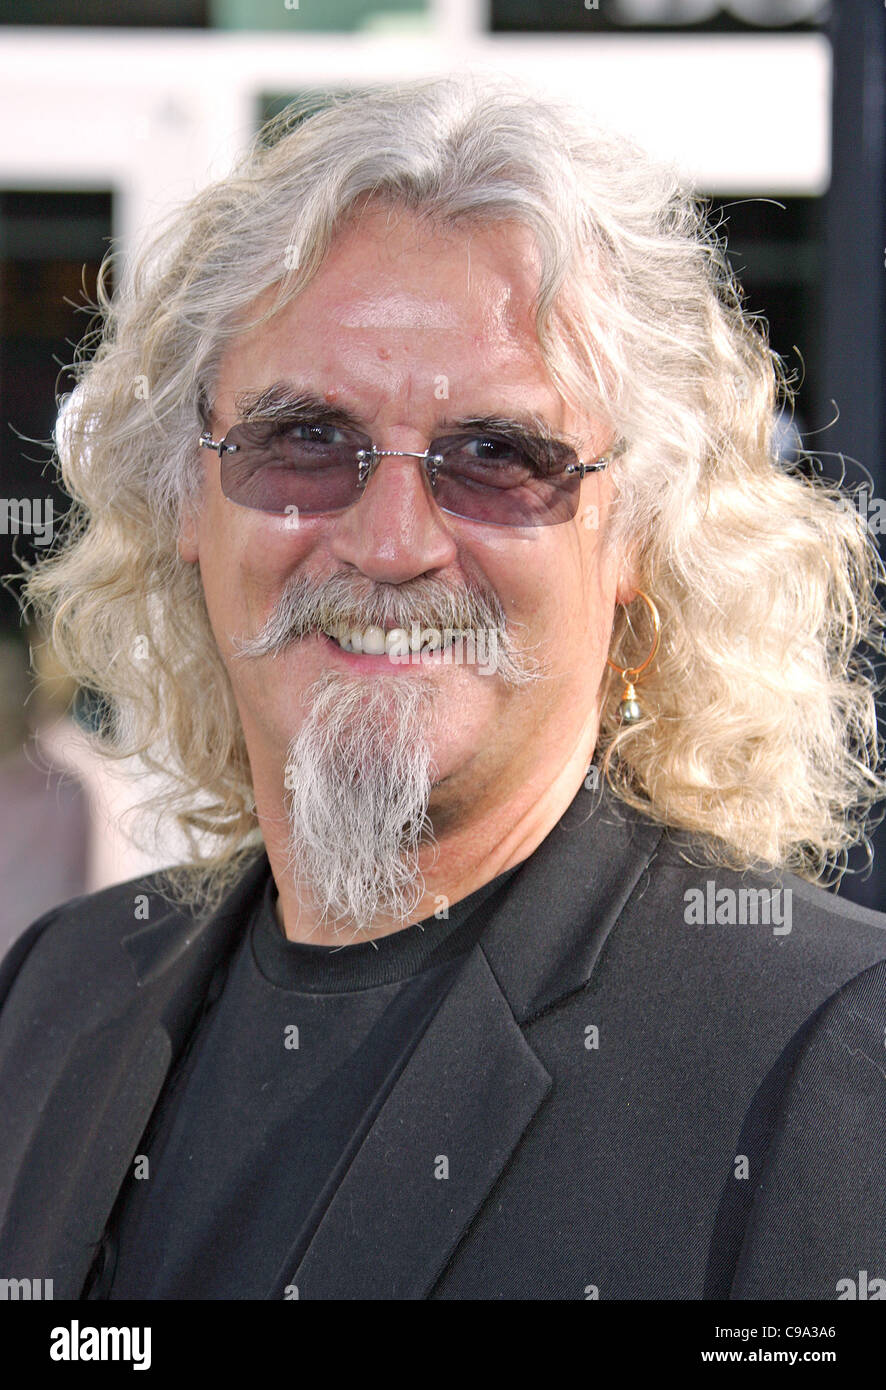 billy connolly stock photos  u0026 billy connolly stock images